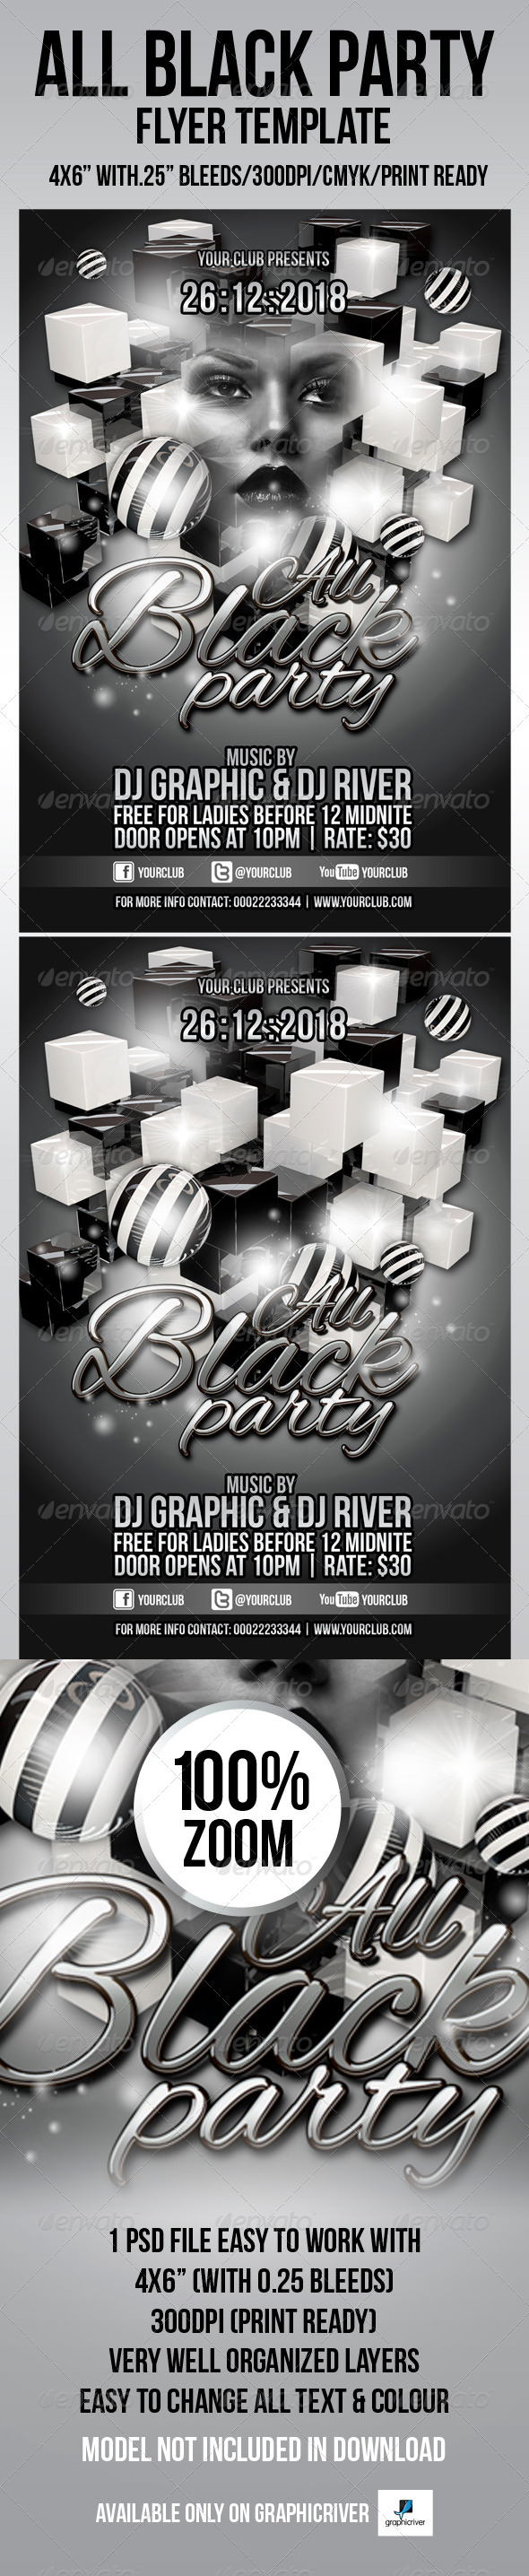 All Black Party Flyer Template - Events Flyers